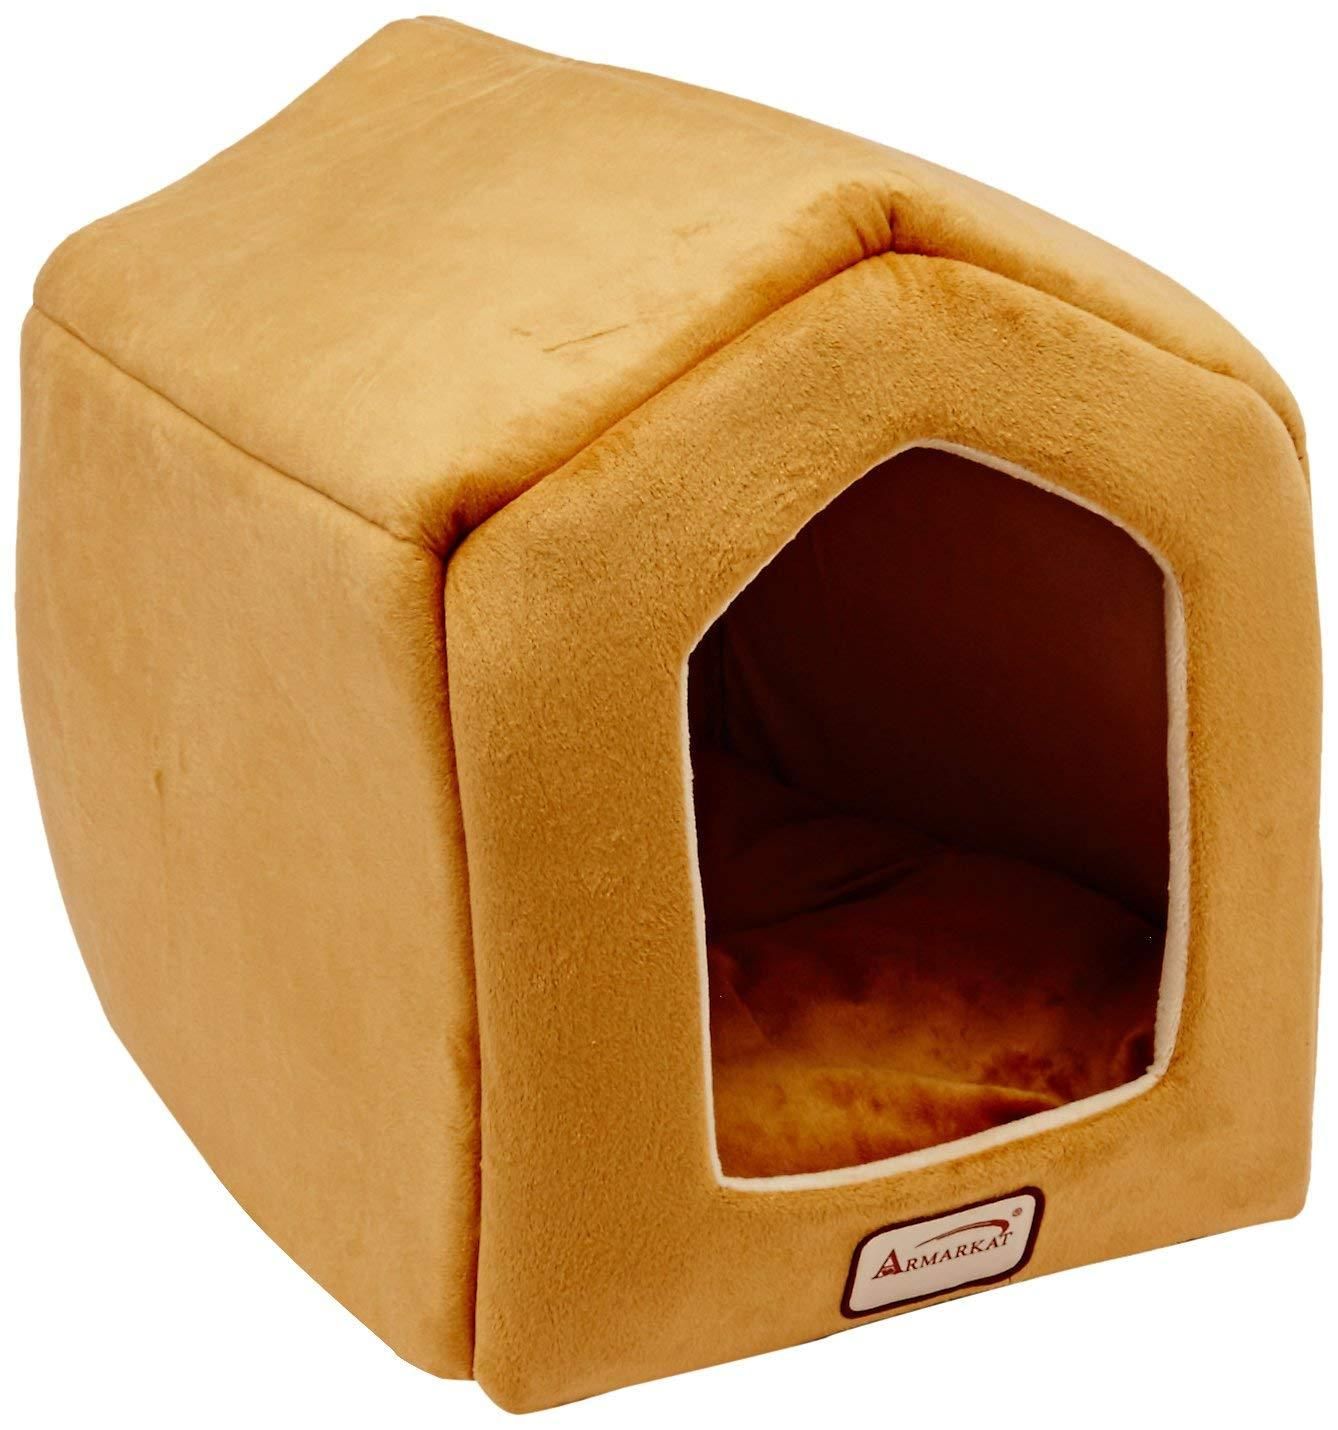 Aeromark International Armarkat Cave Shape Pet Cat Beds for Cats and Small Dogs